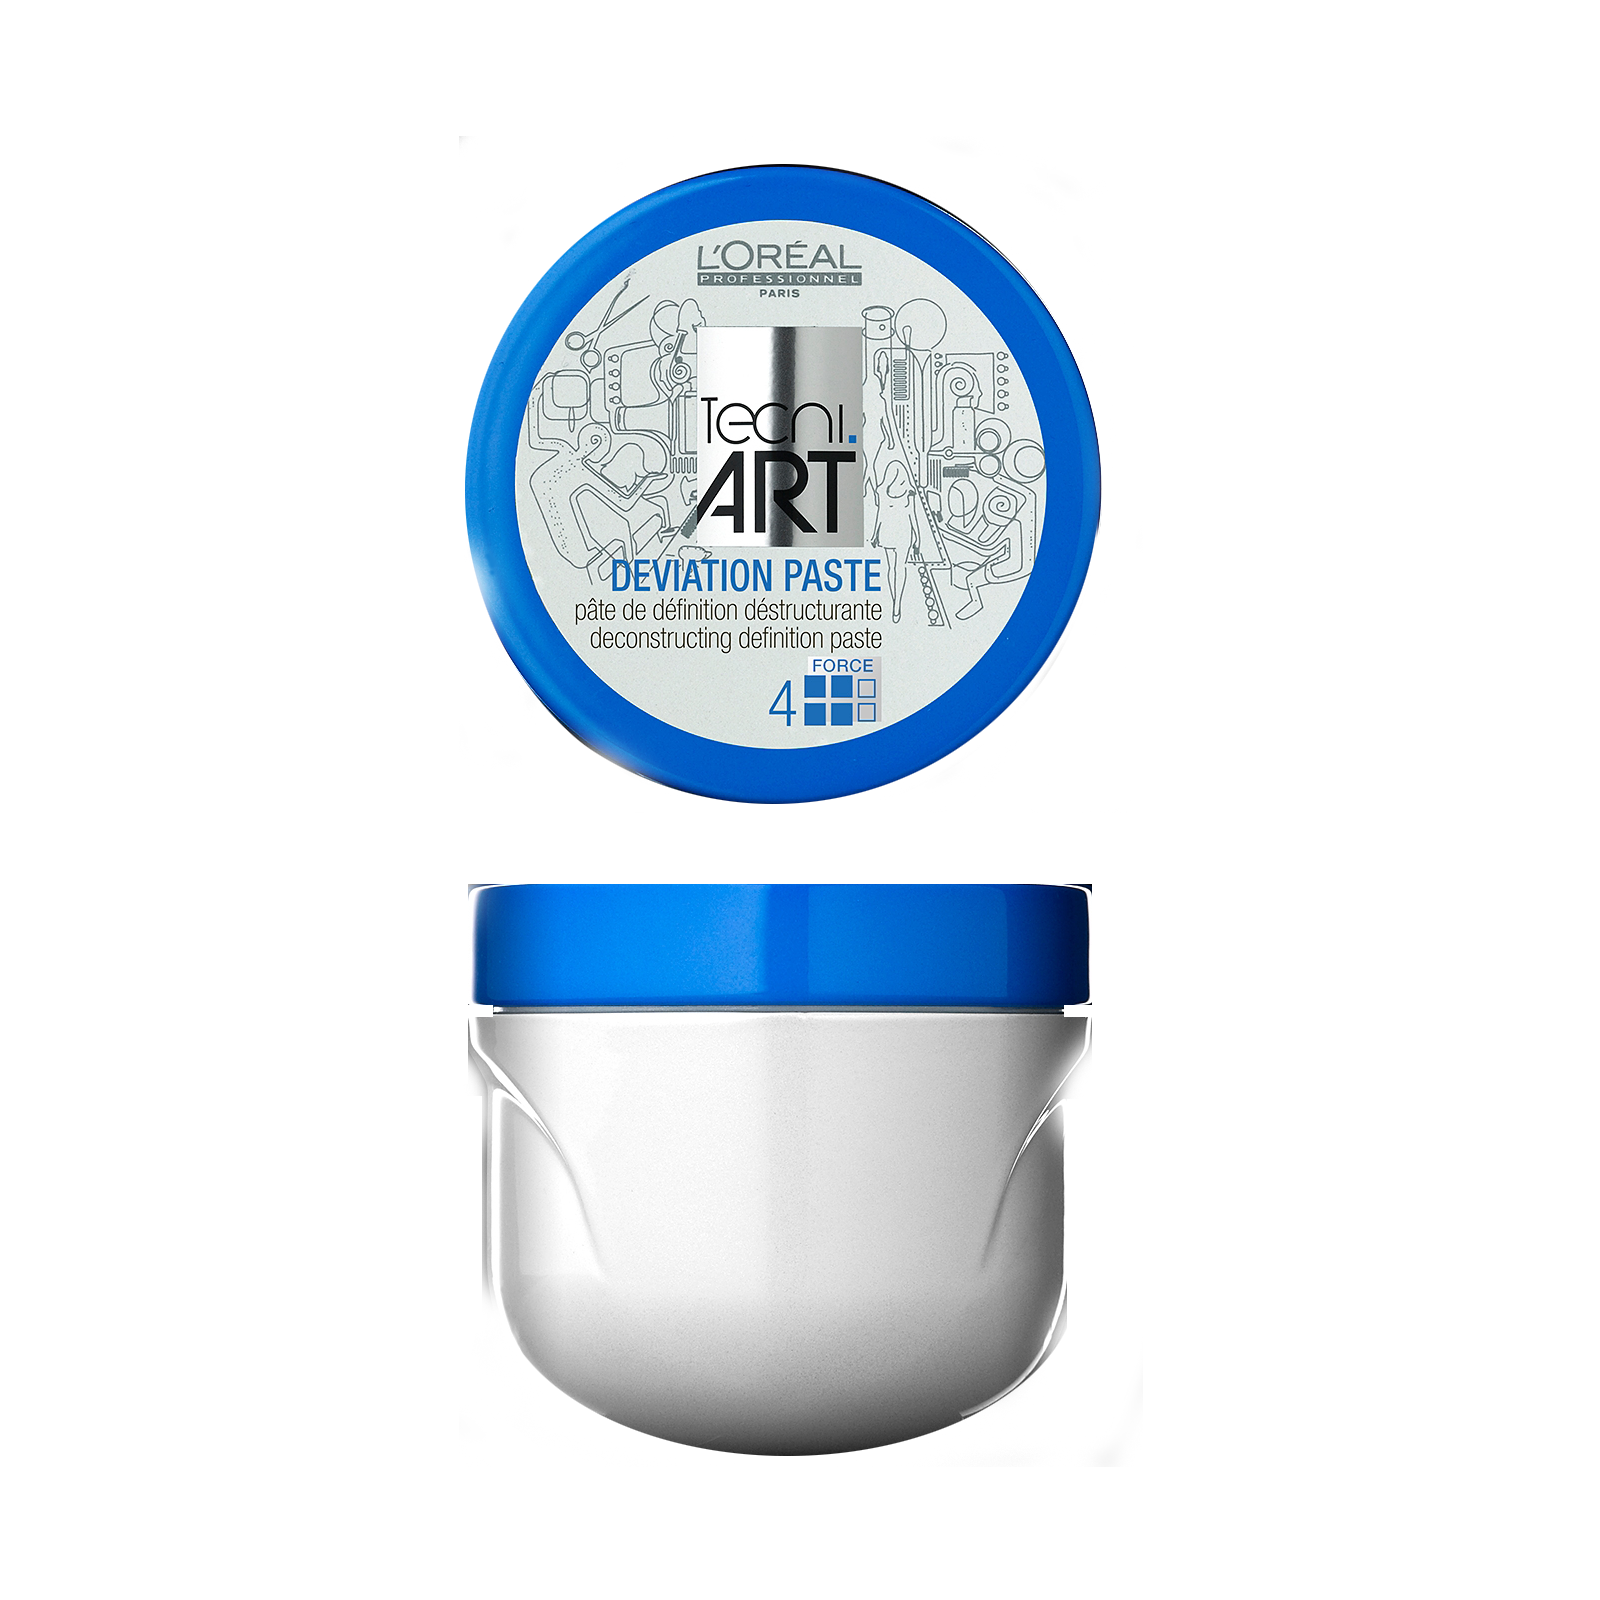 L'ORÉAL Professionnel Tecni Art Deviation Paste D. Definition Paste 100 ml